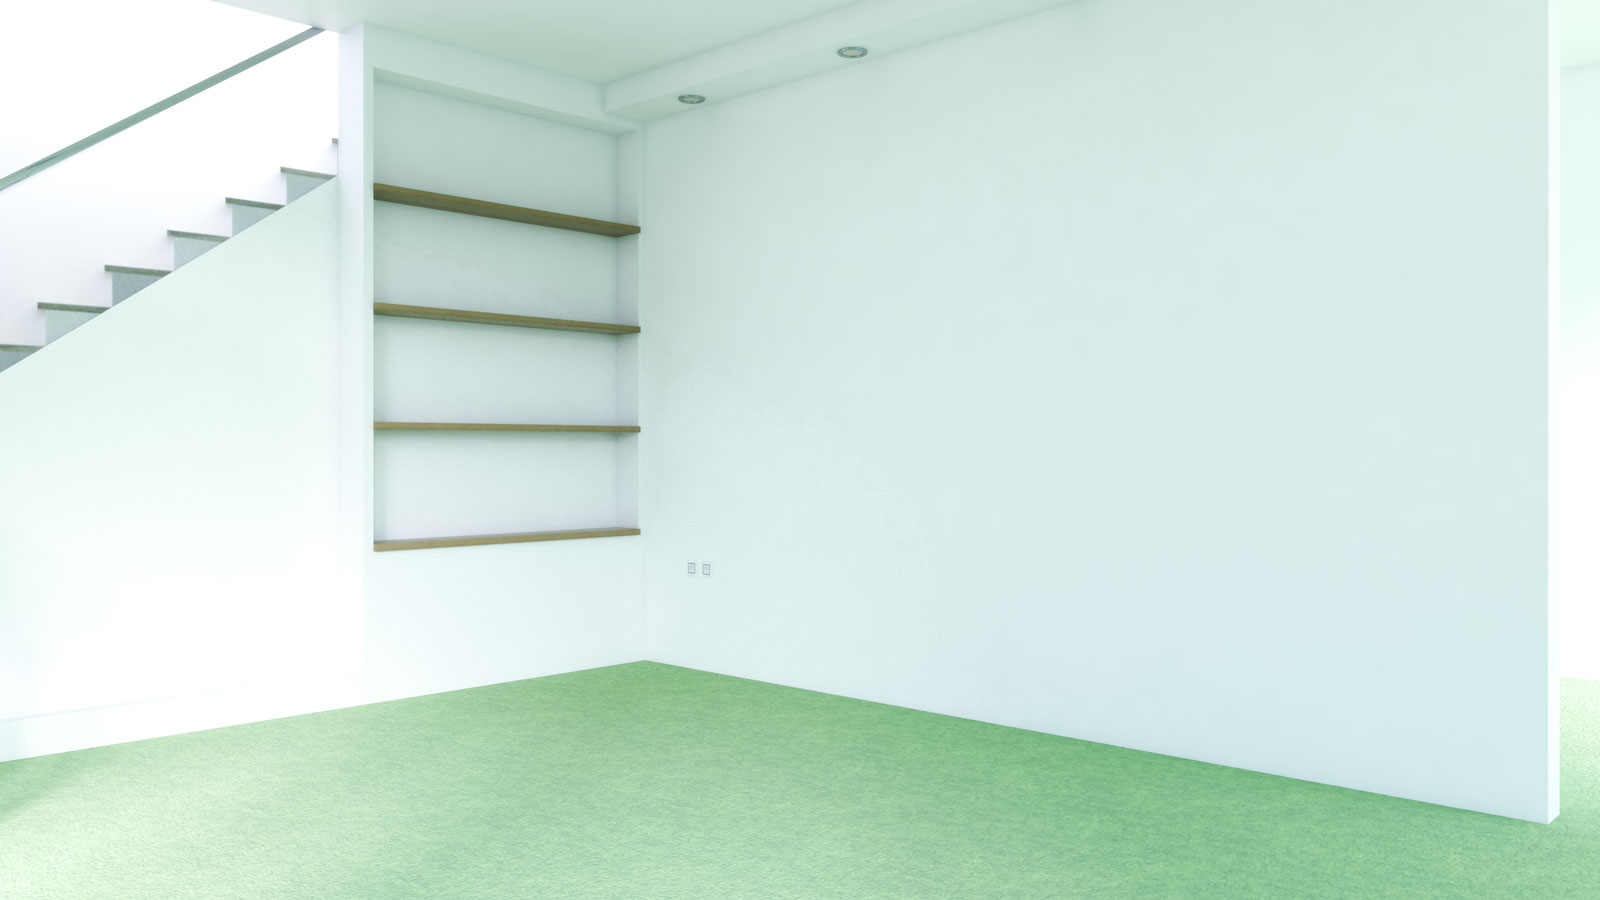 Green carpet with white walls